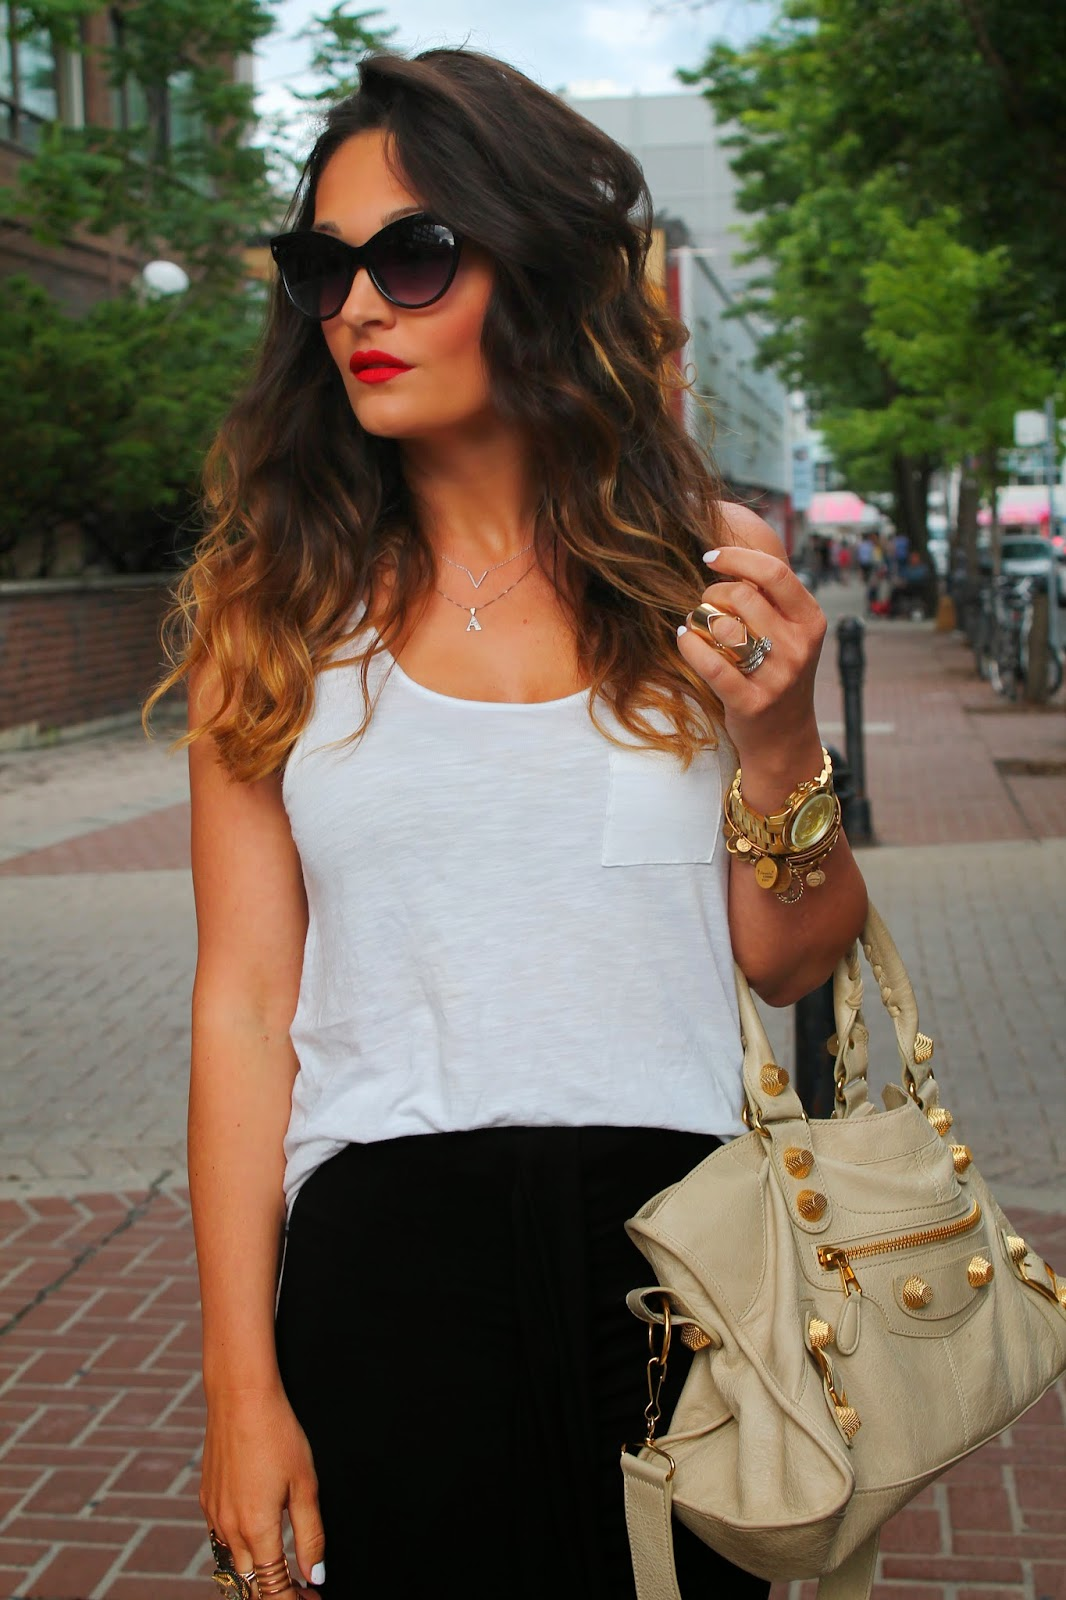 black skirt, black relaxed skirt, relaxed summer outfit, white and black outfit, leopard booties, leopard ankle boots, balenciaga bag, blogerke, letnja moda, canadian fashion blogger, toronto street style, yonge street, dundas square, ombre hair, red lips, alex&ani